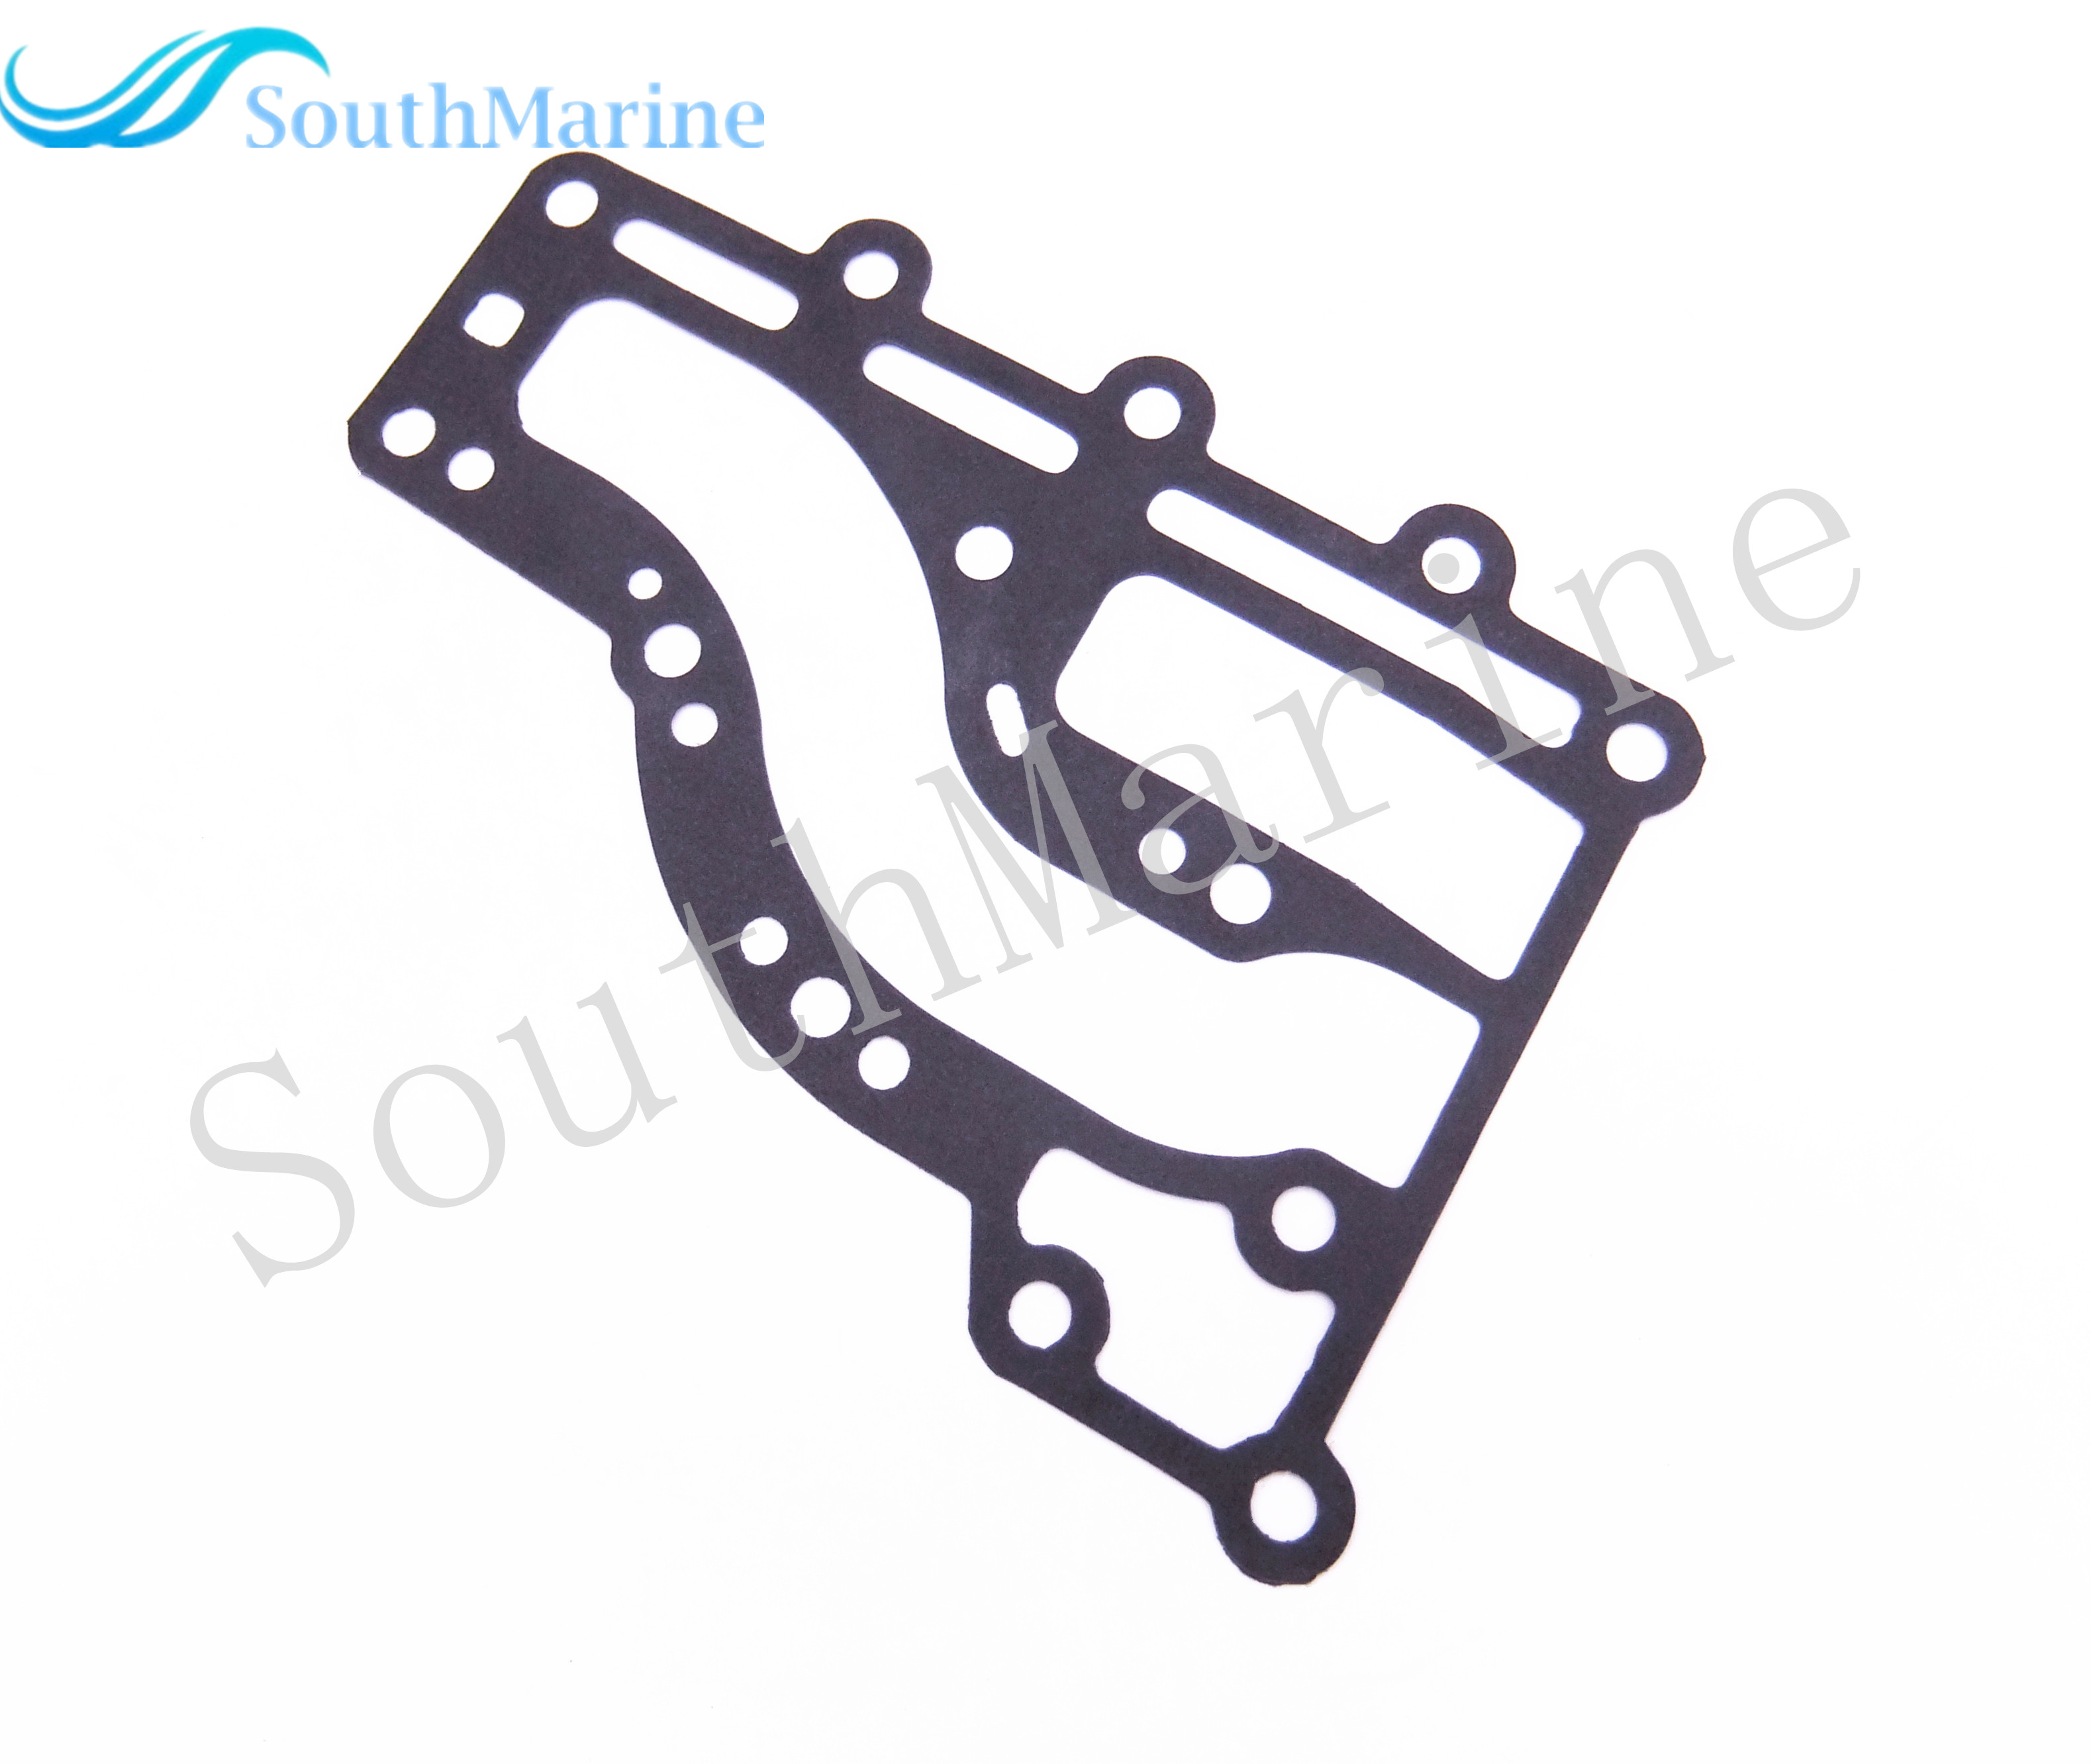 Boat Motor 63V-41112-A0 Exhaust Cover Gasket for Yamaha 2-Stroke 9.9hp 15hp Outboard Engine, Free Shipping